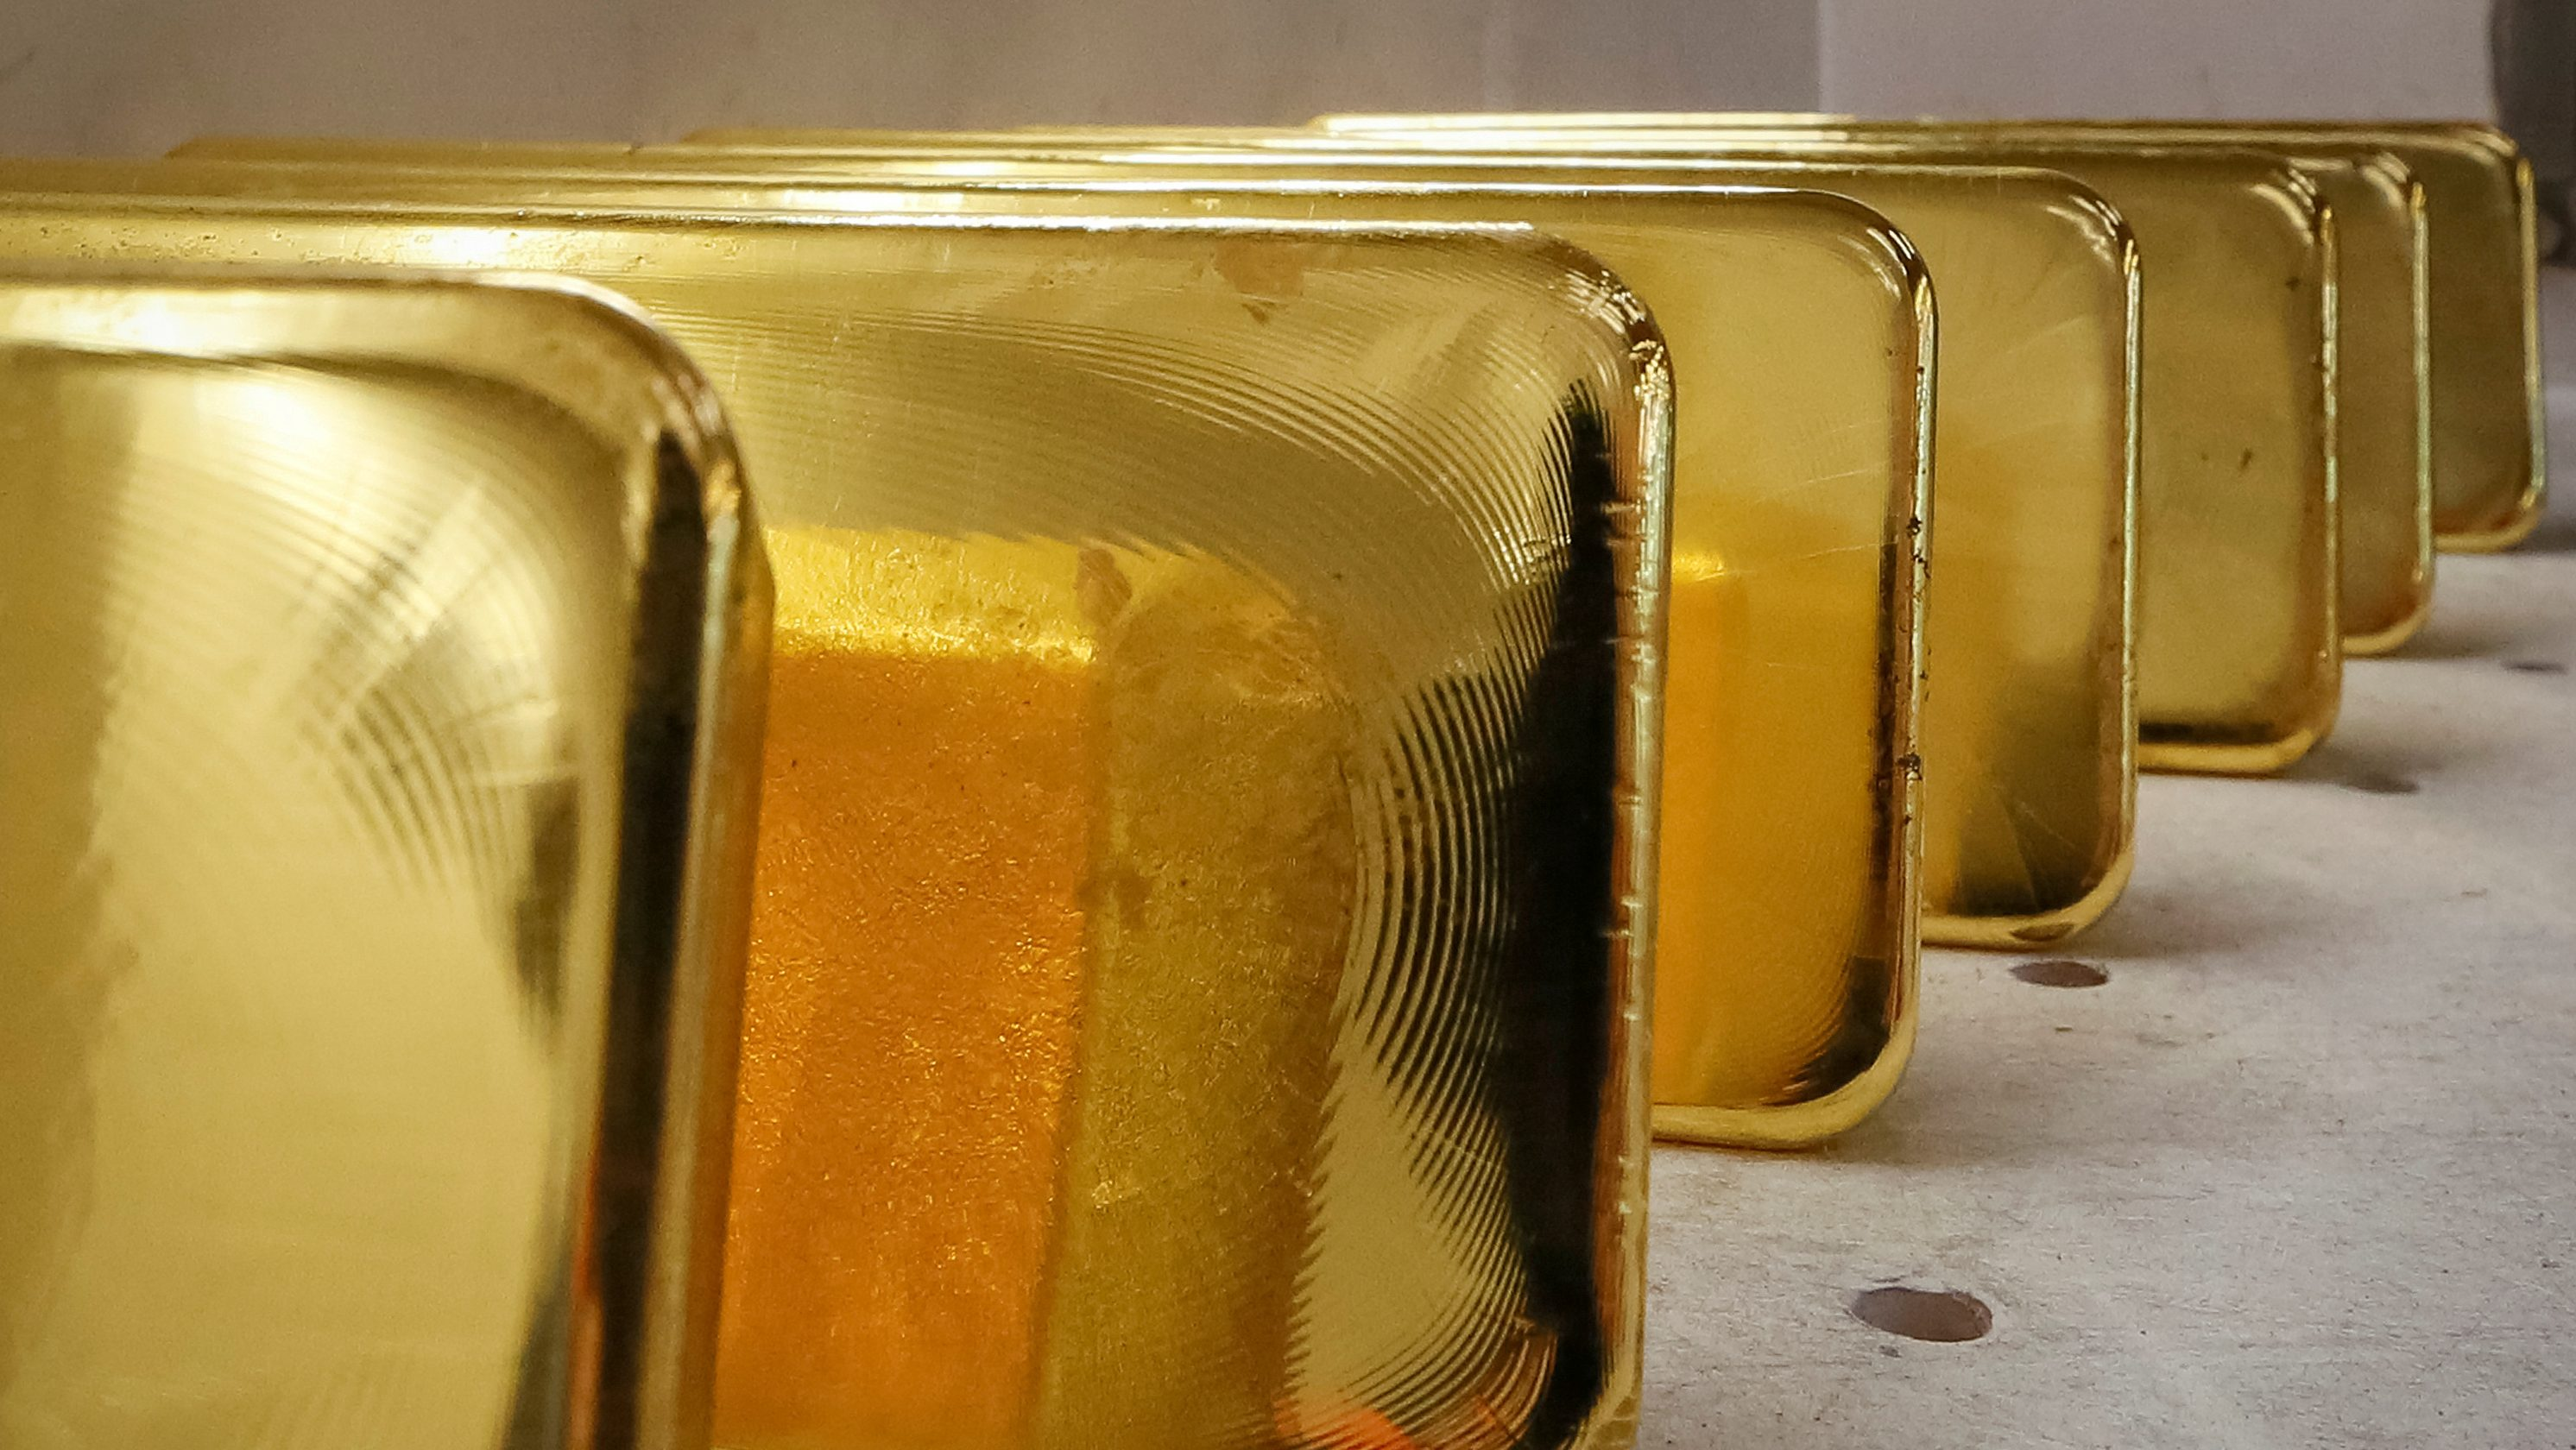 Siberian gold. metals. com was shut down by regulators